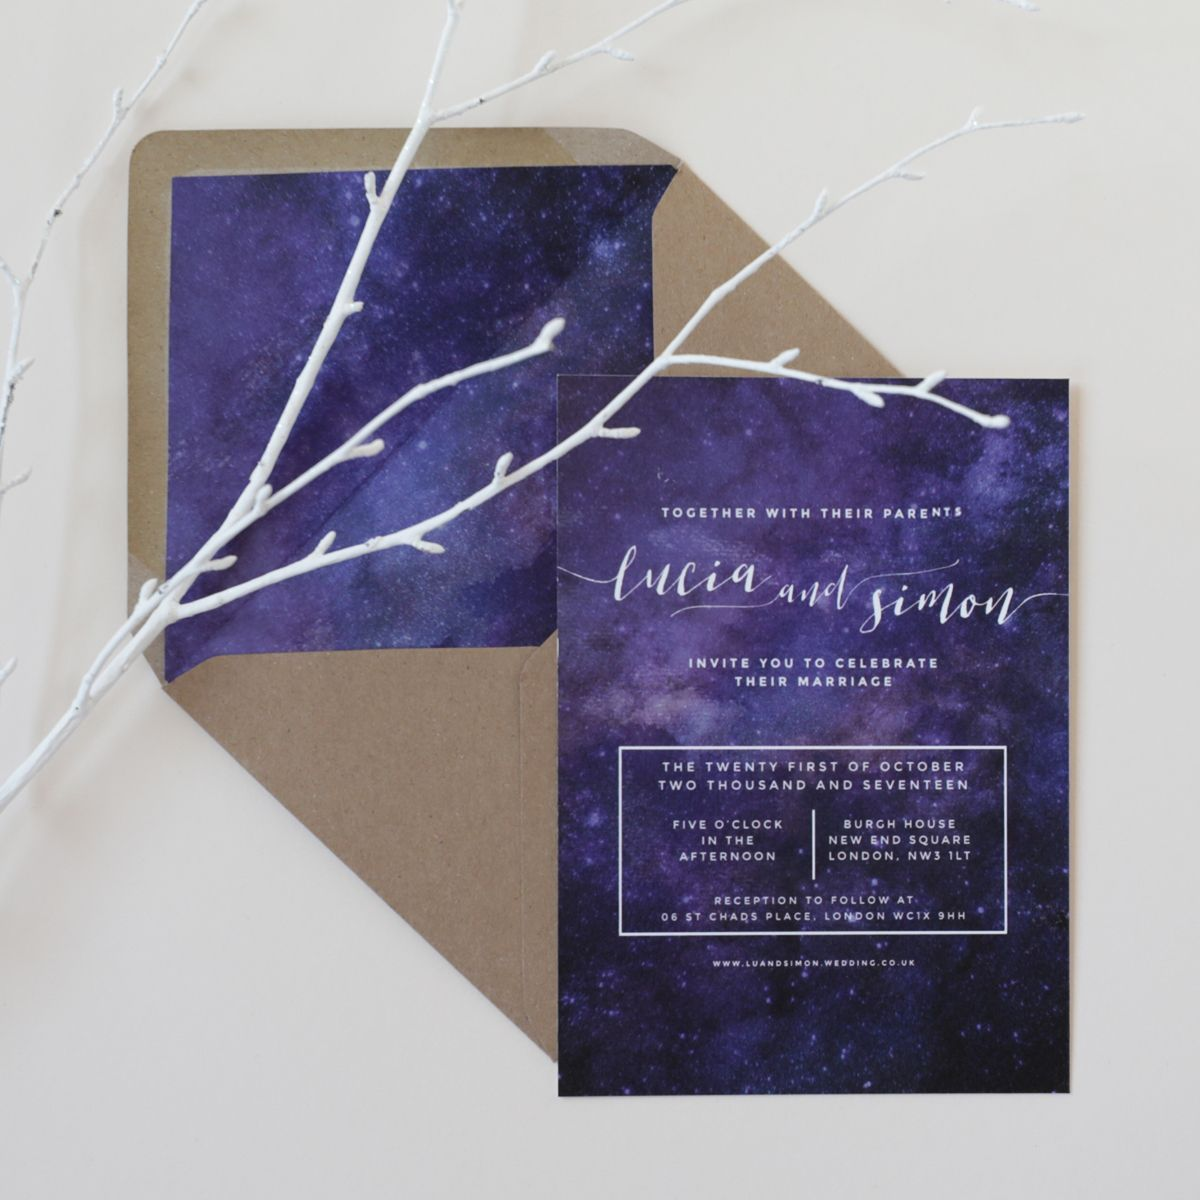 Inspired by all things nighttime - stars, constellations and ...